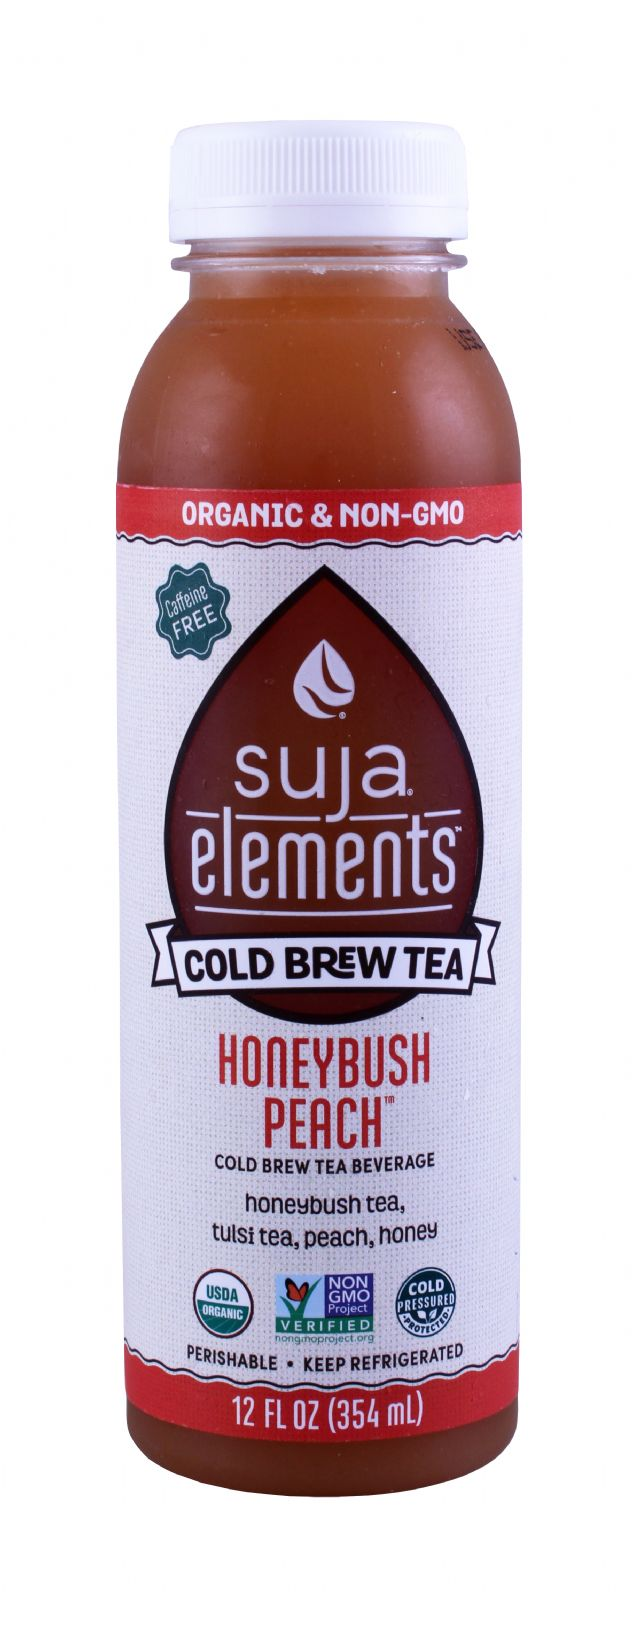 Suja Elements Cold Brew Tea: Suja HoneybushPeach Front